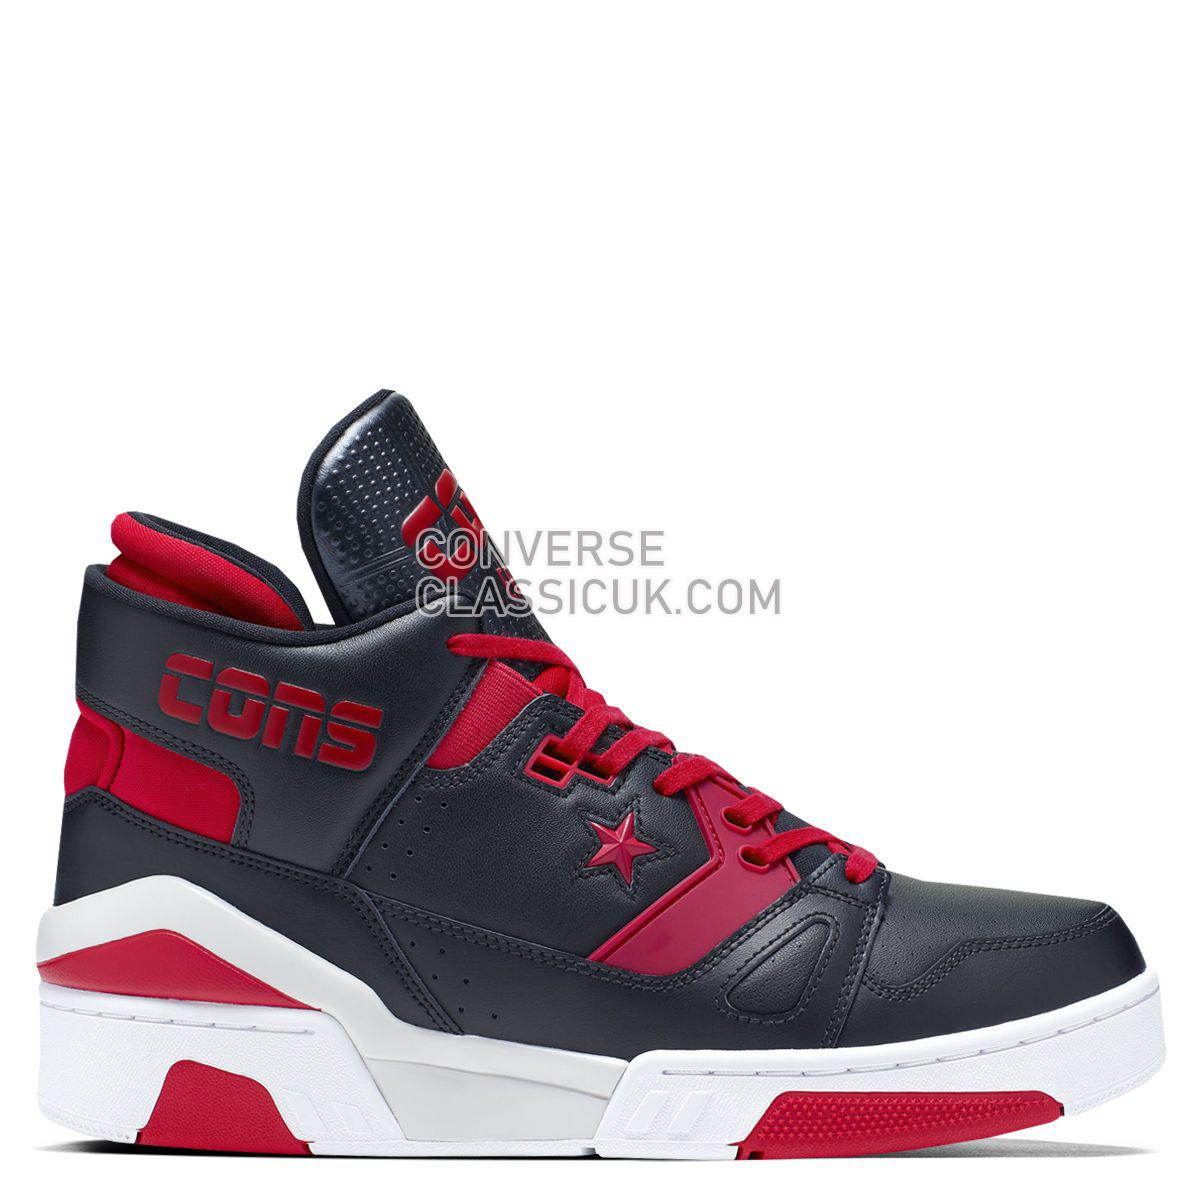 Converse ERX 260 Mid Empire Red Edition Mens 163852 Black/Black/Red Shoes